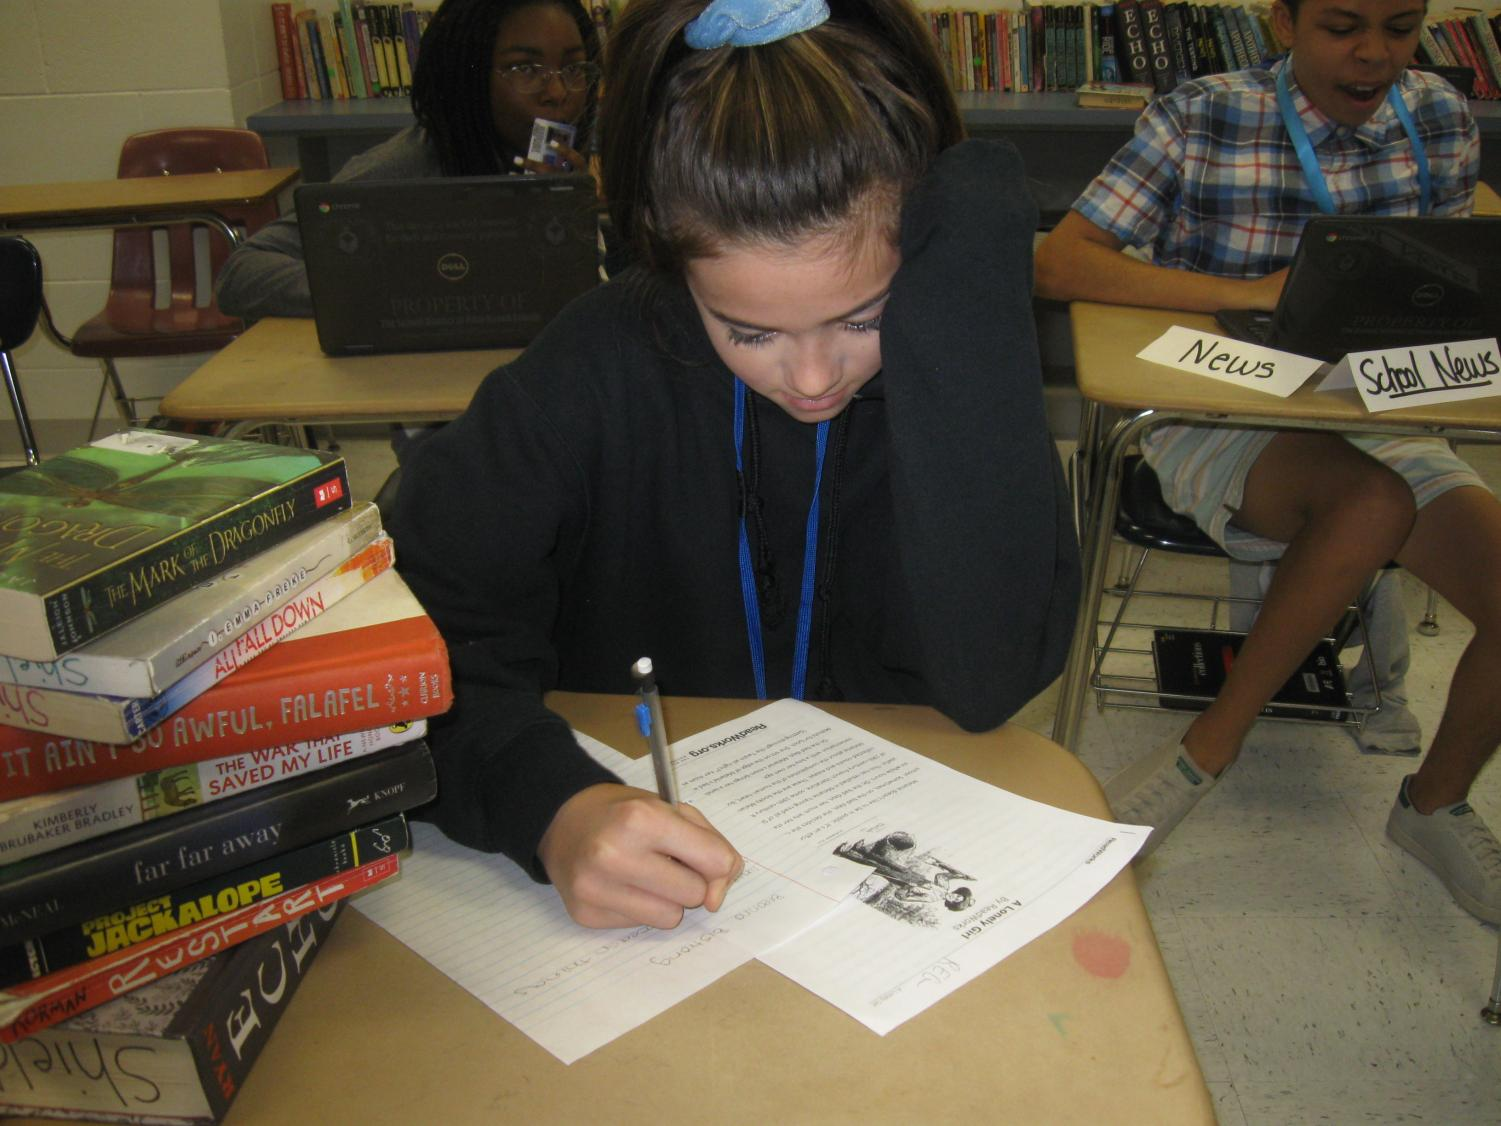 Breanna Bistrong taking a test